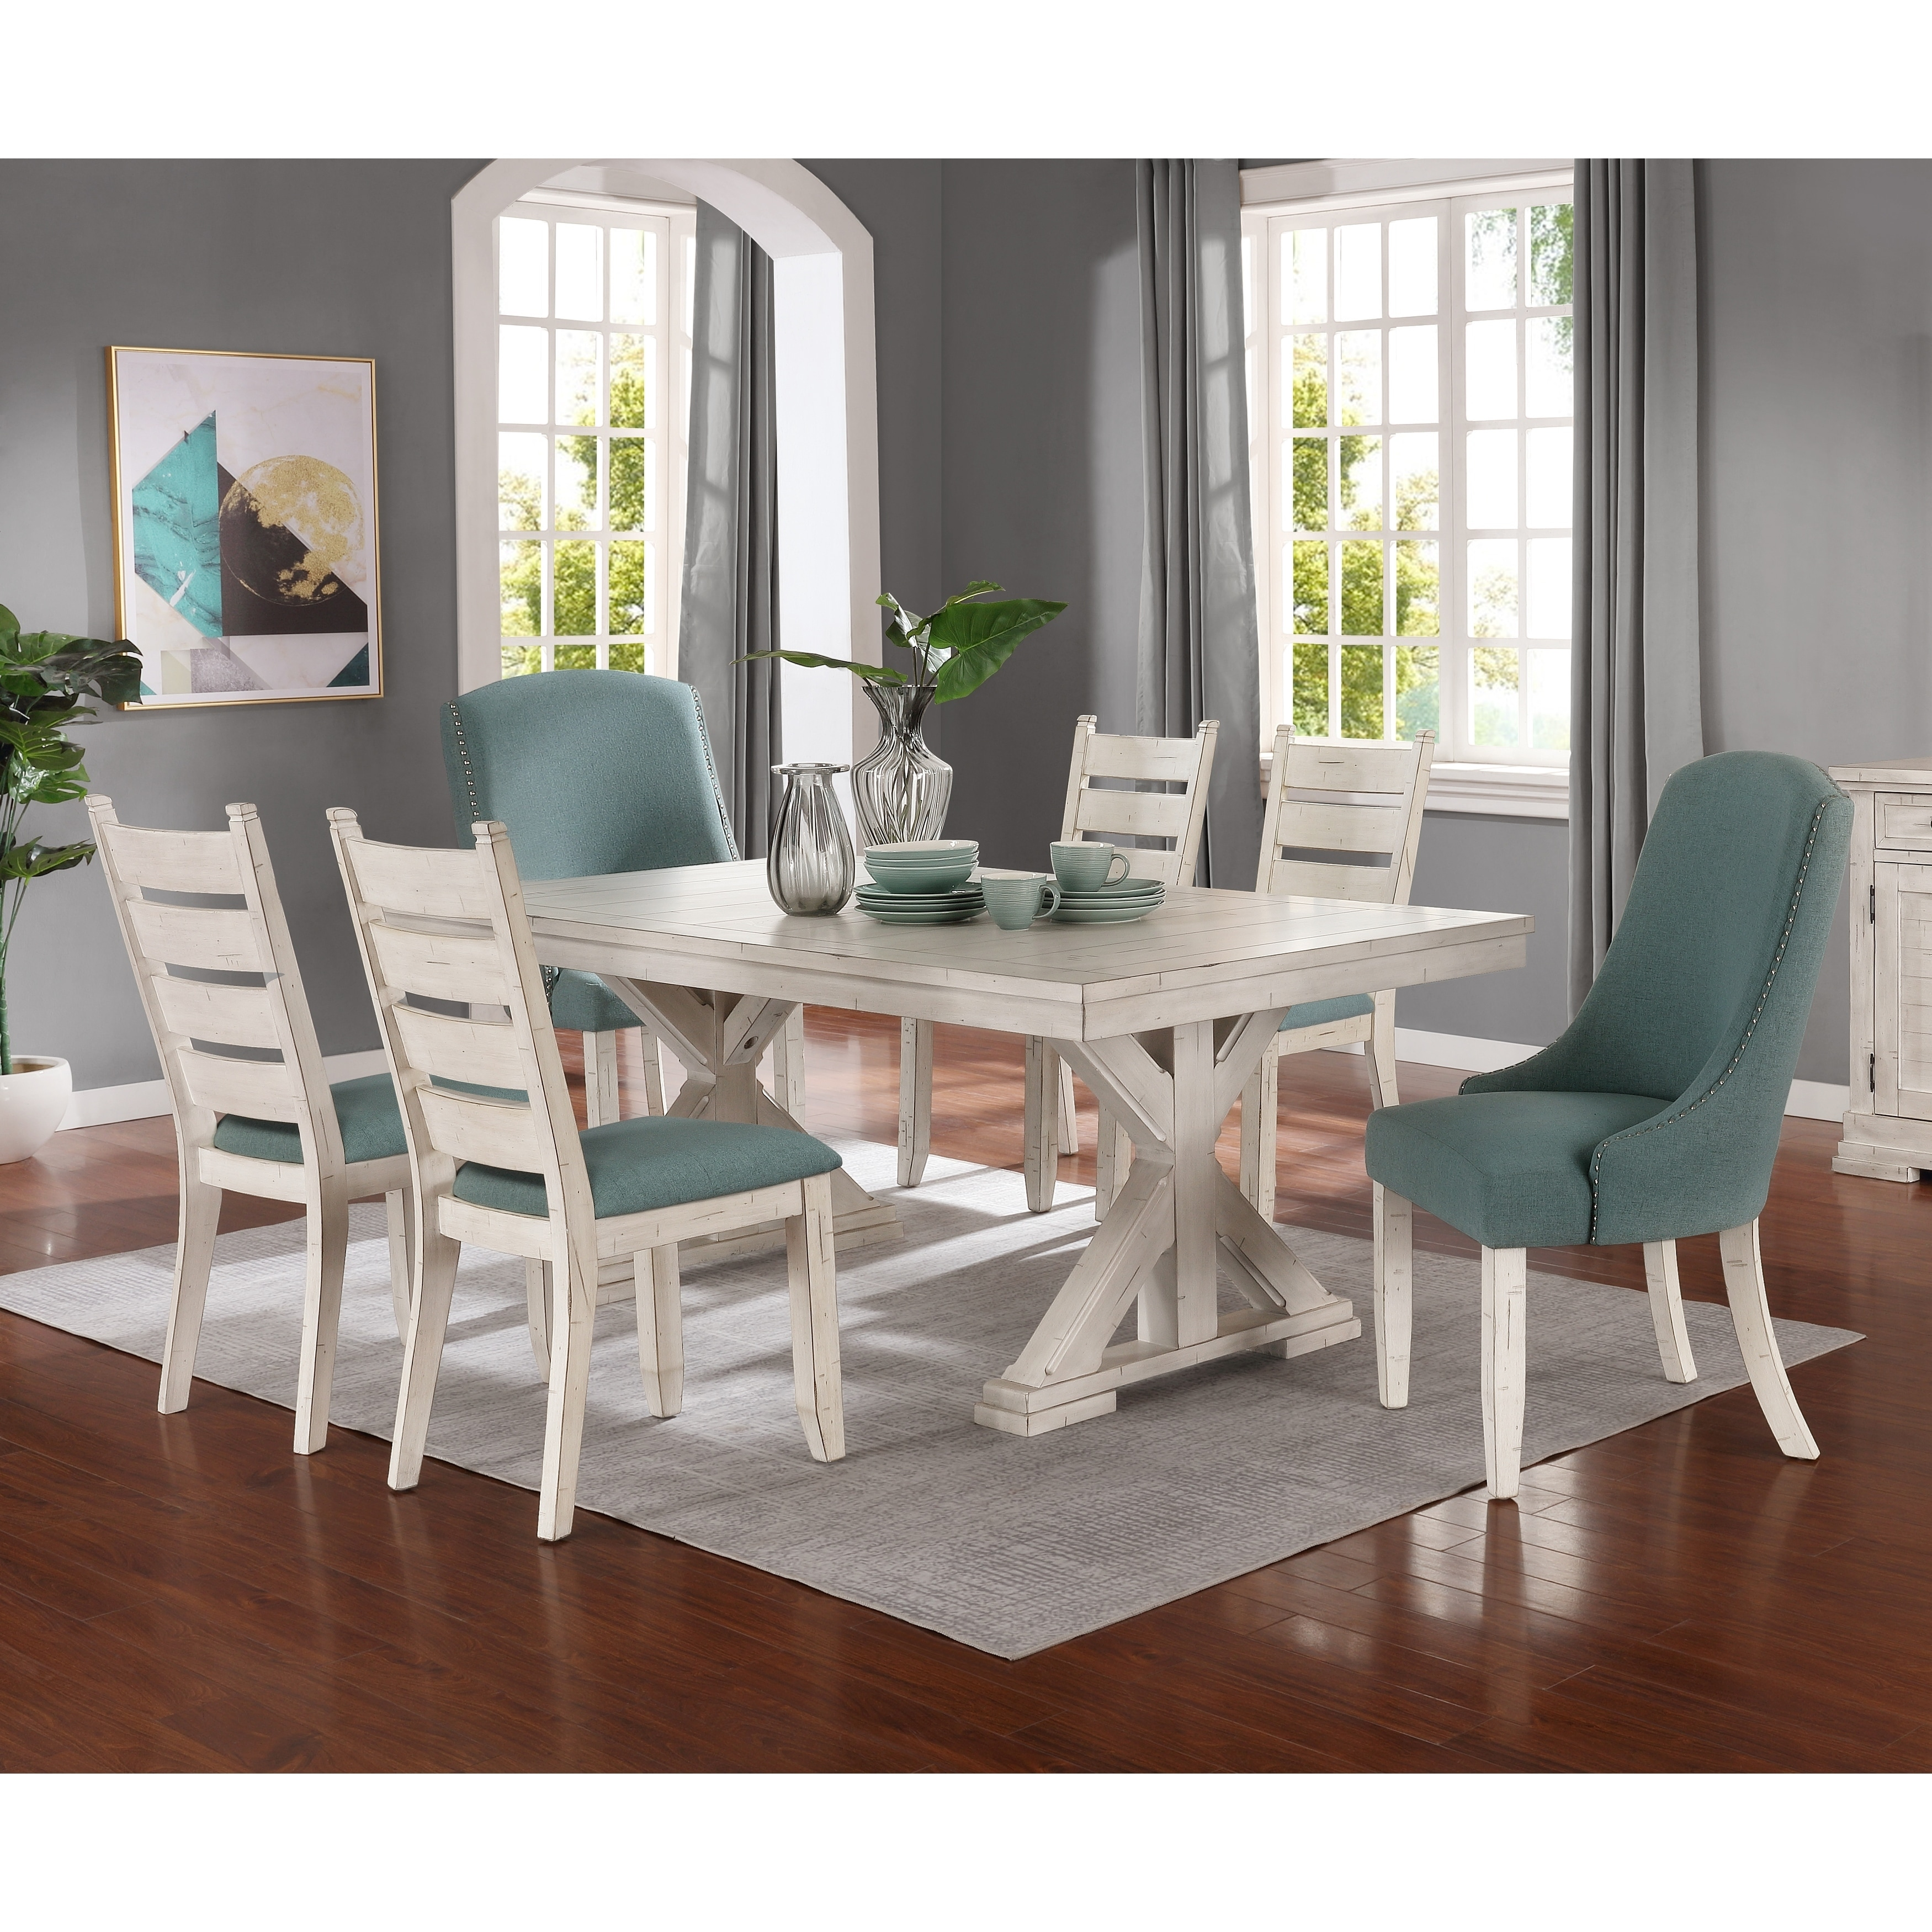 Remarkable Florina Antique White Wood Trestle 7 Piece Dining Set Dining Table With 6 Chairs Beatyapartments Chair Design Images Beatyapartmentscom